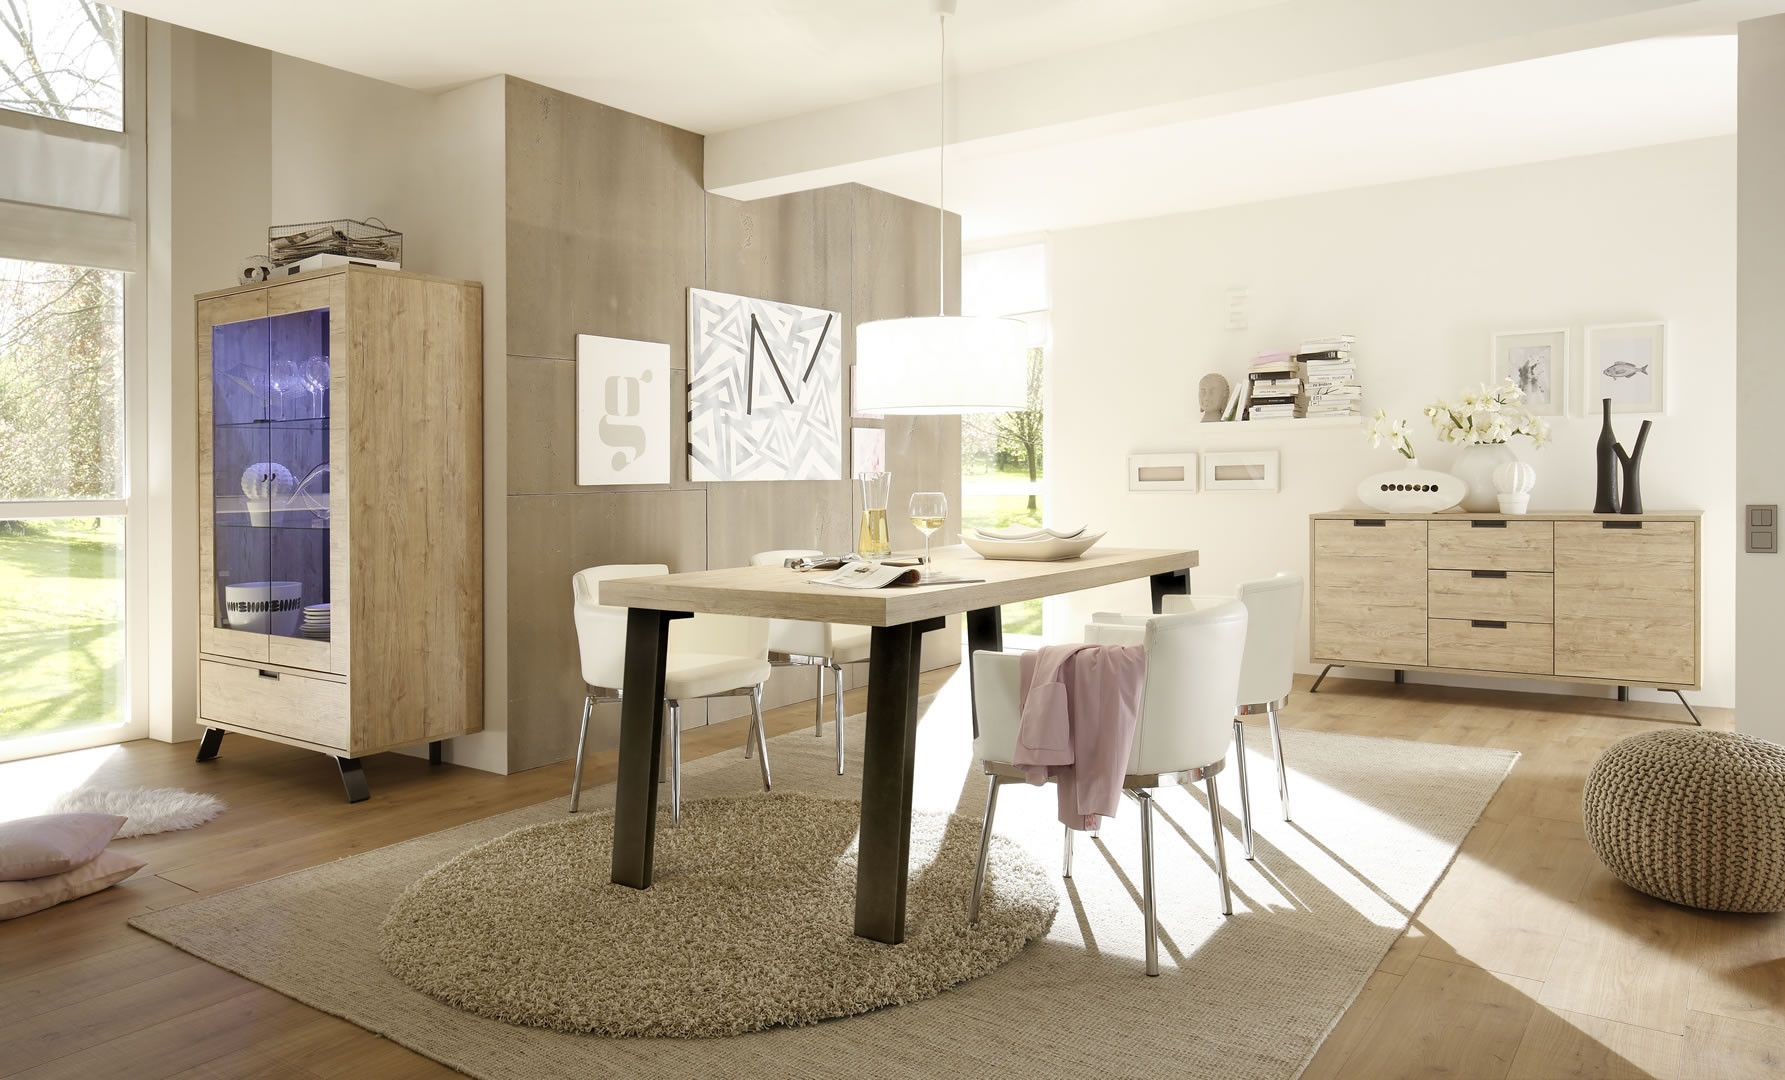 Made In Italy Salle A Manger Complete Style Scandinave Avec Eclairage Bois Et Metal Malpa